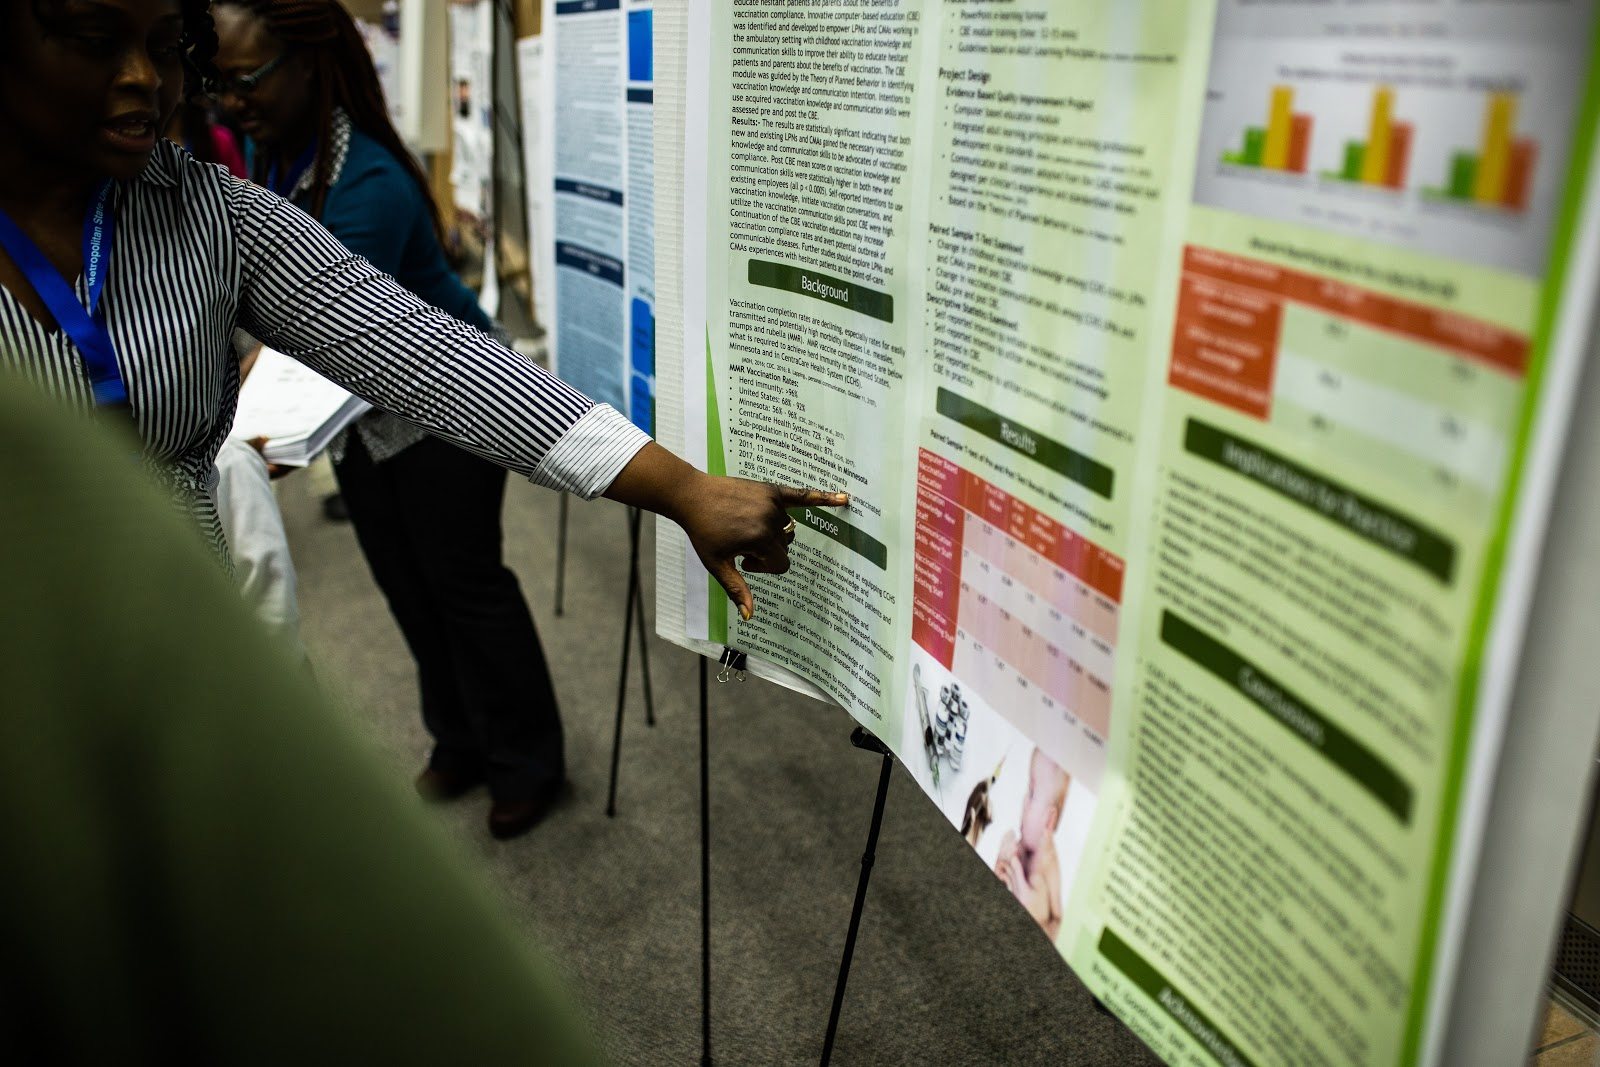 Doctoral nursing student Ijeoma Ugochukwu's research on increasing vaccination knowledge and skills. She was the runner-up for best overall poster at the 2018 Student Poster Conference.  Photo by Eli Bartz